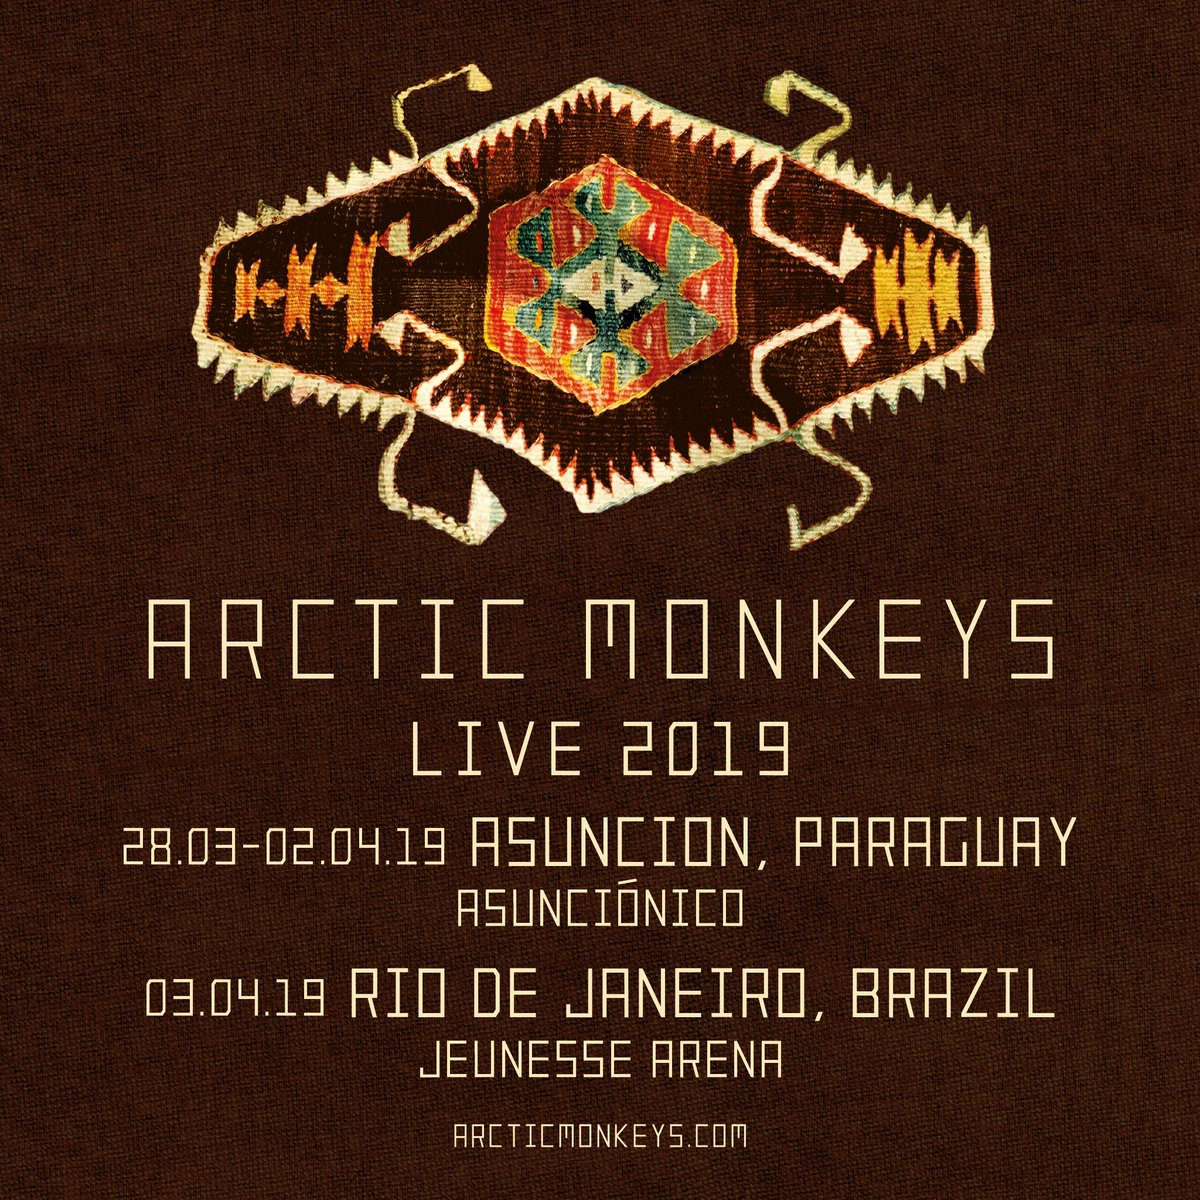 We are pleased to announce that we will be coming to Paraguay and Brazil in March/April 2019. For tickets visit https://t.co/PaUDpilxTU https://t.co/6GX0qIqBOw